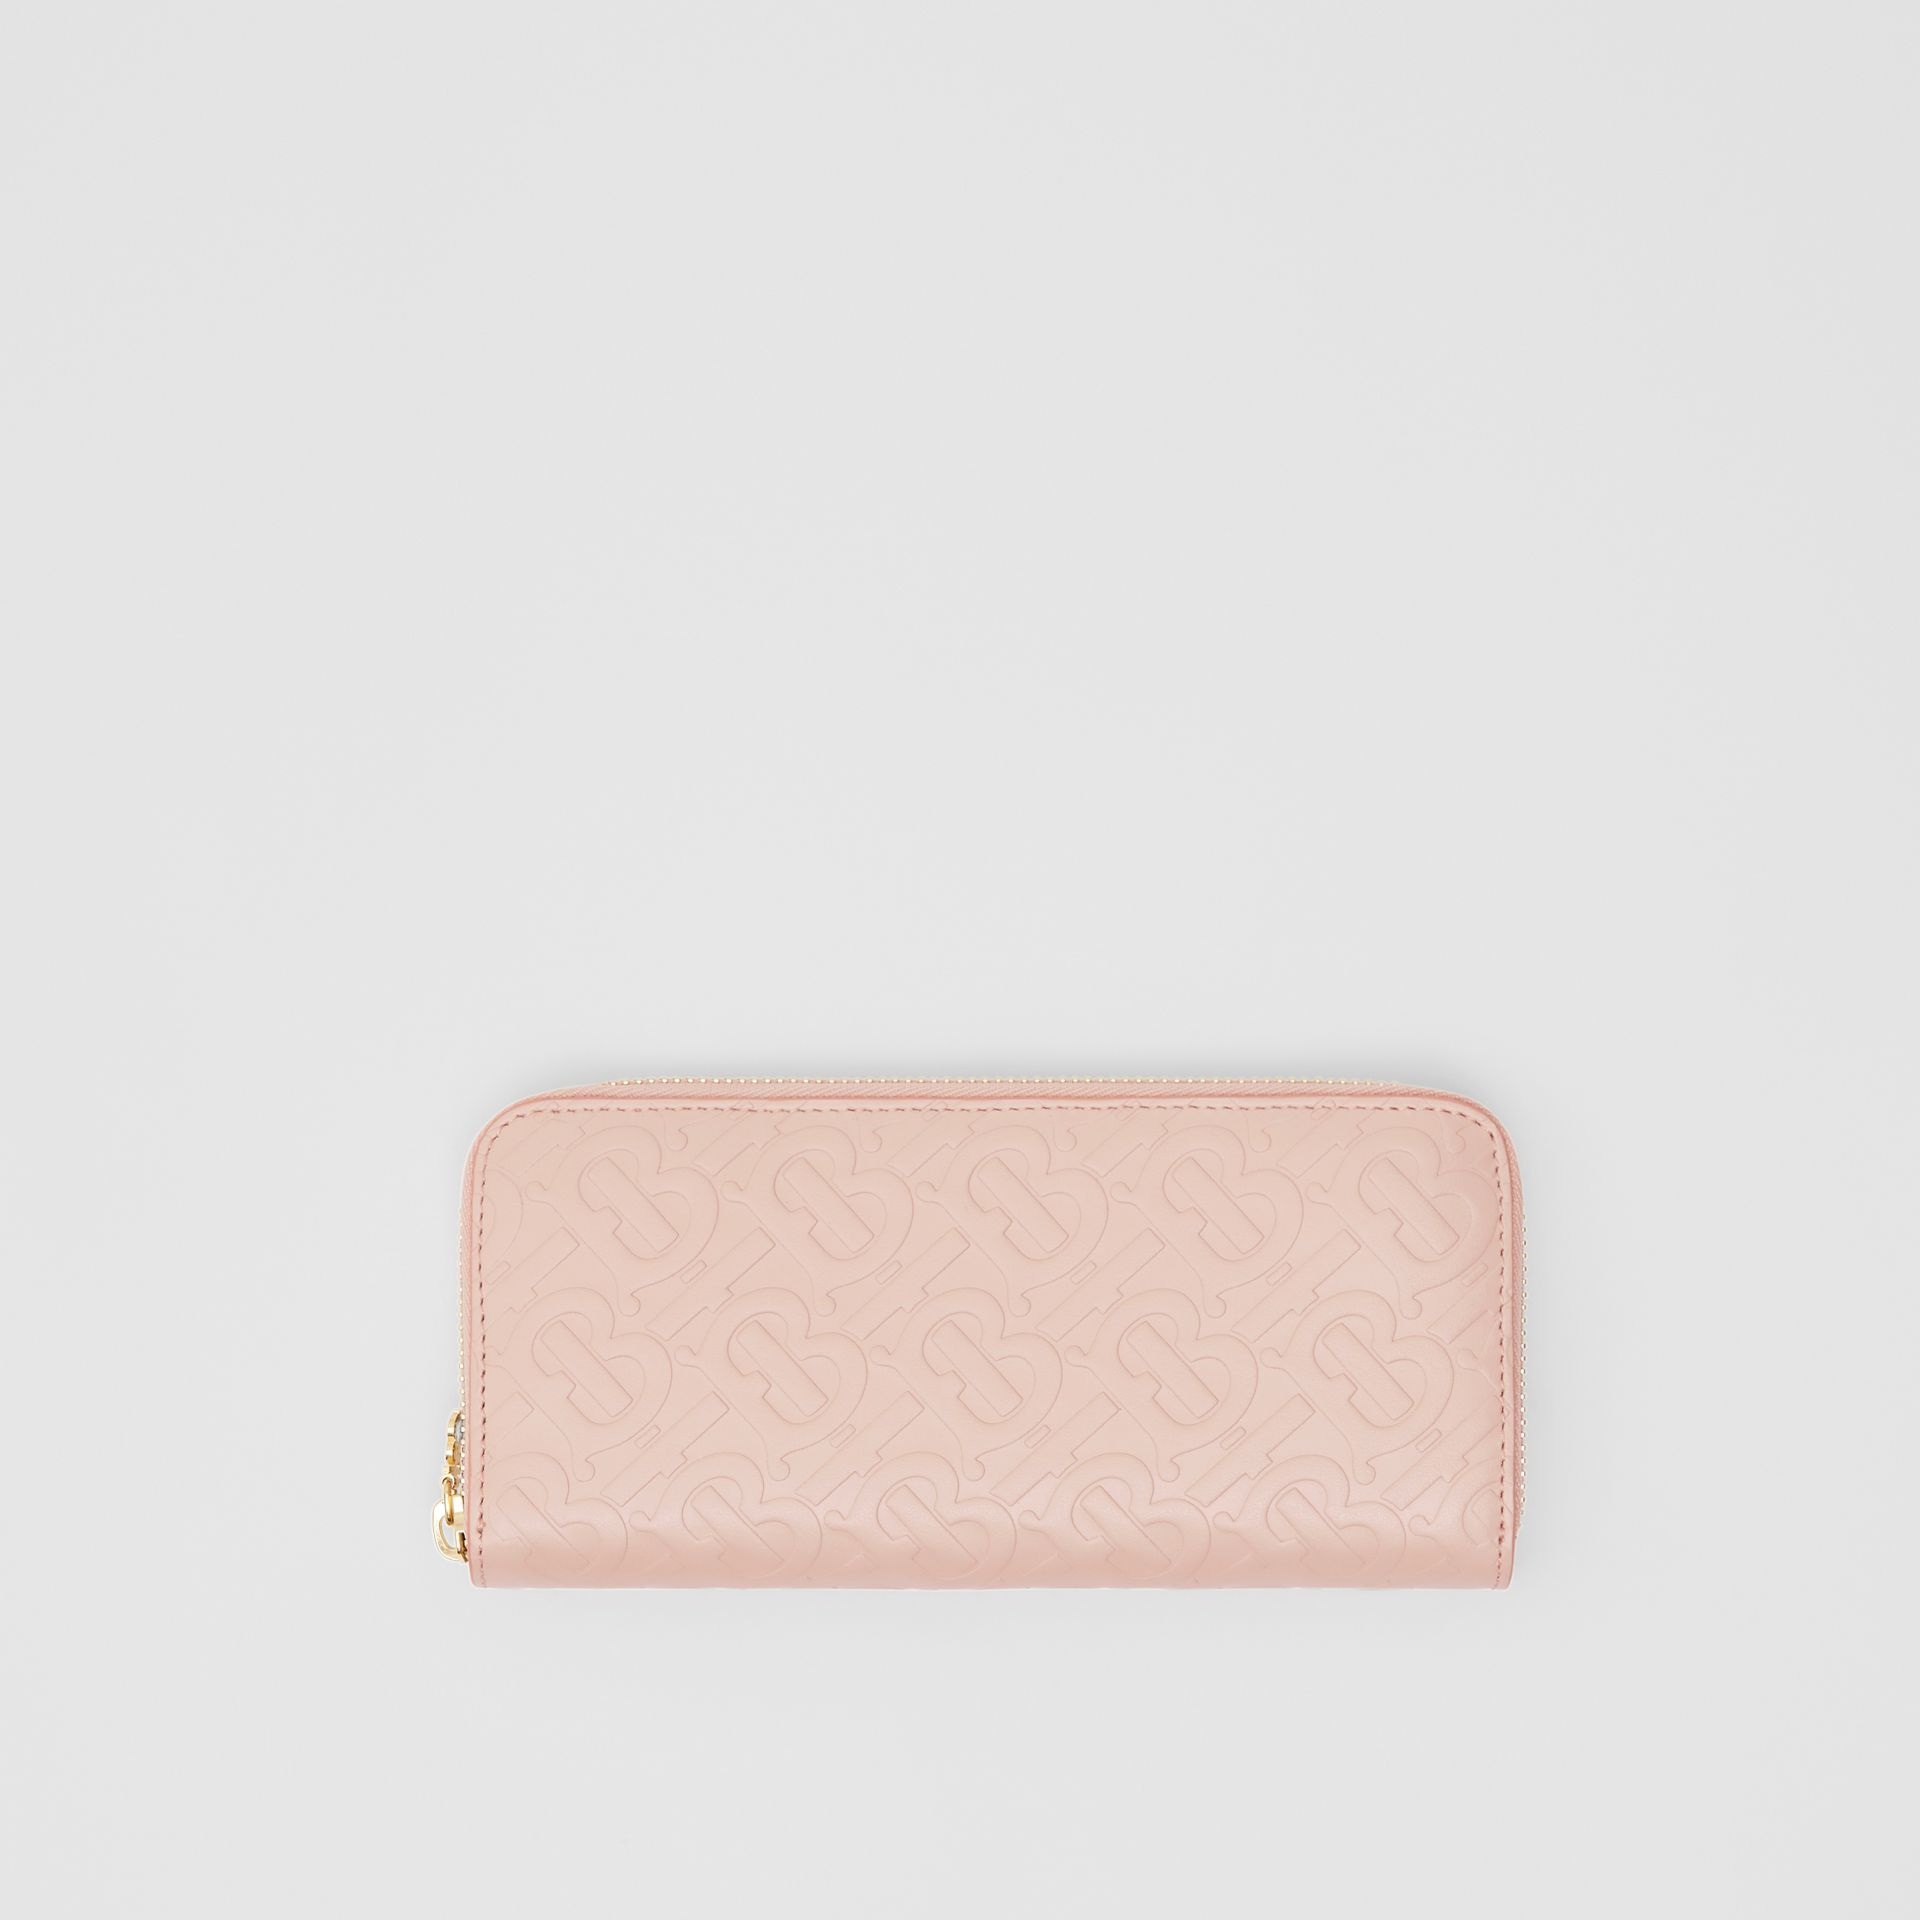 Monogram Leather Ziparound Wallet in Rose Beige - Women | Burberry - gallery image 0